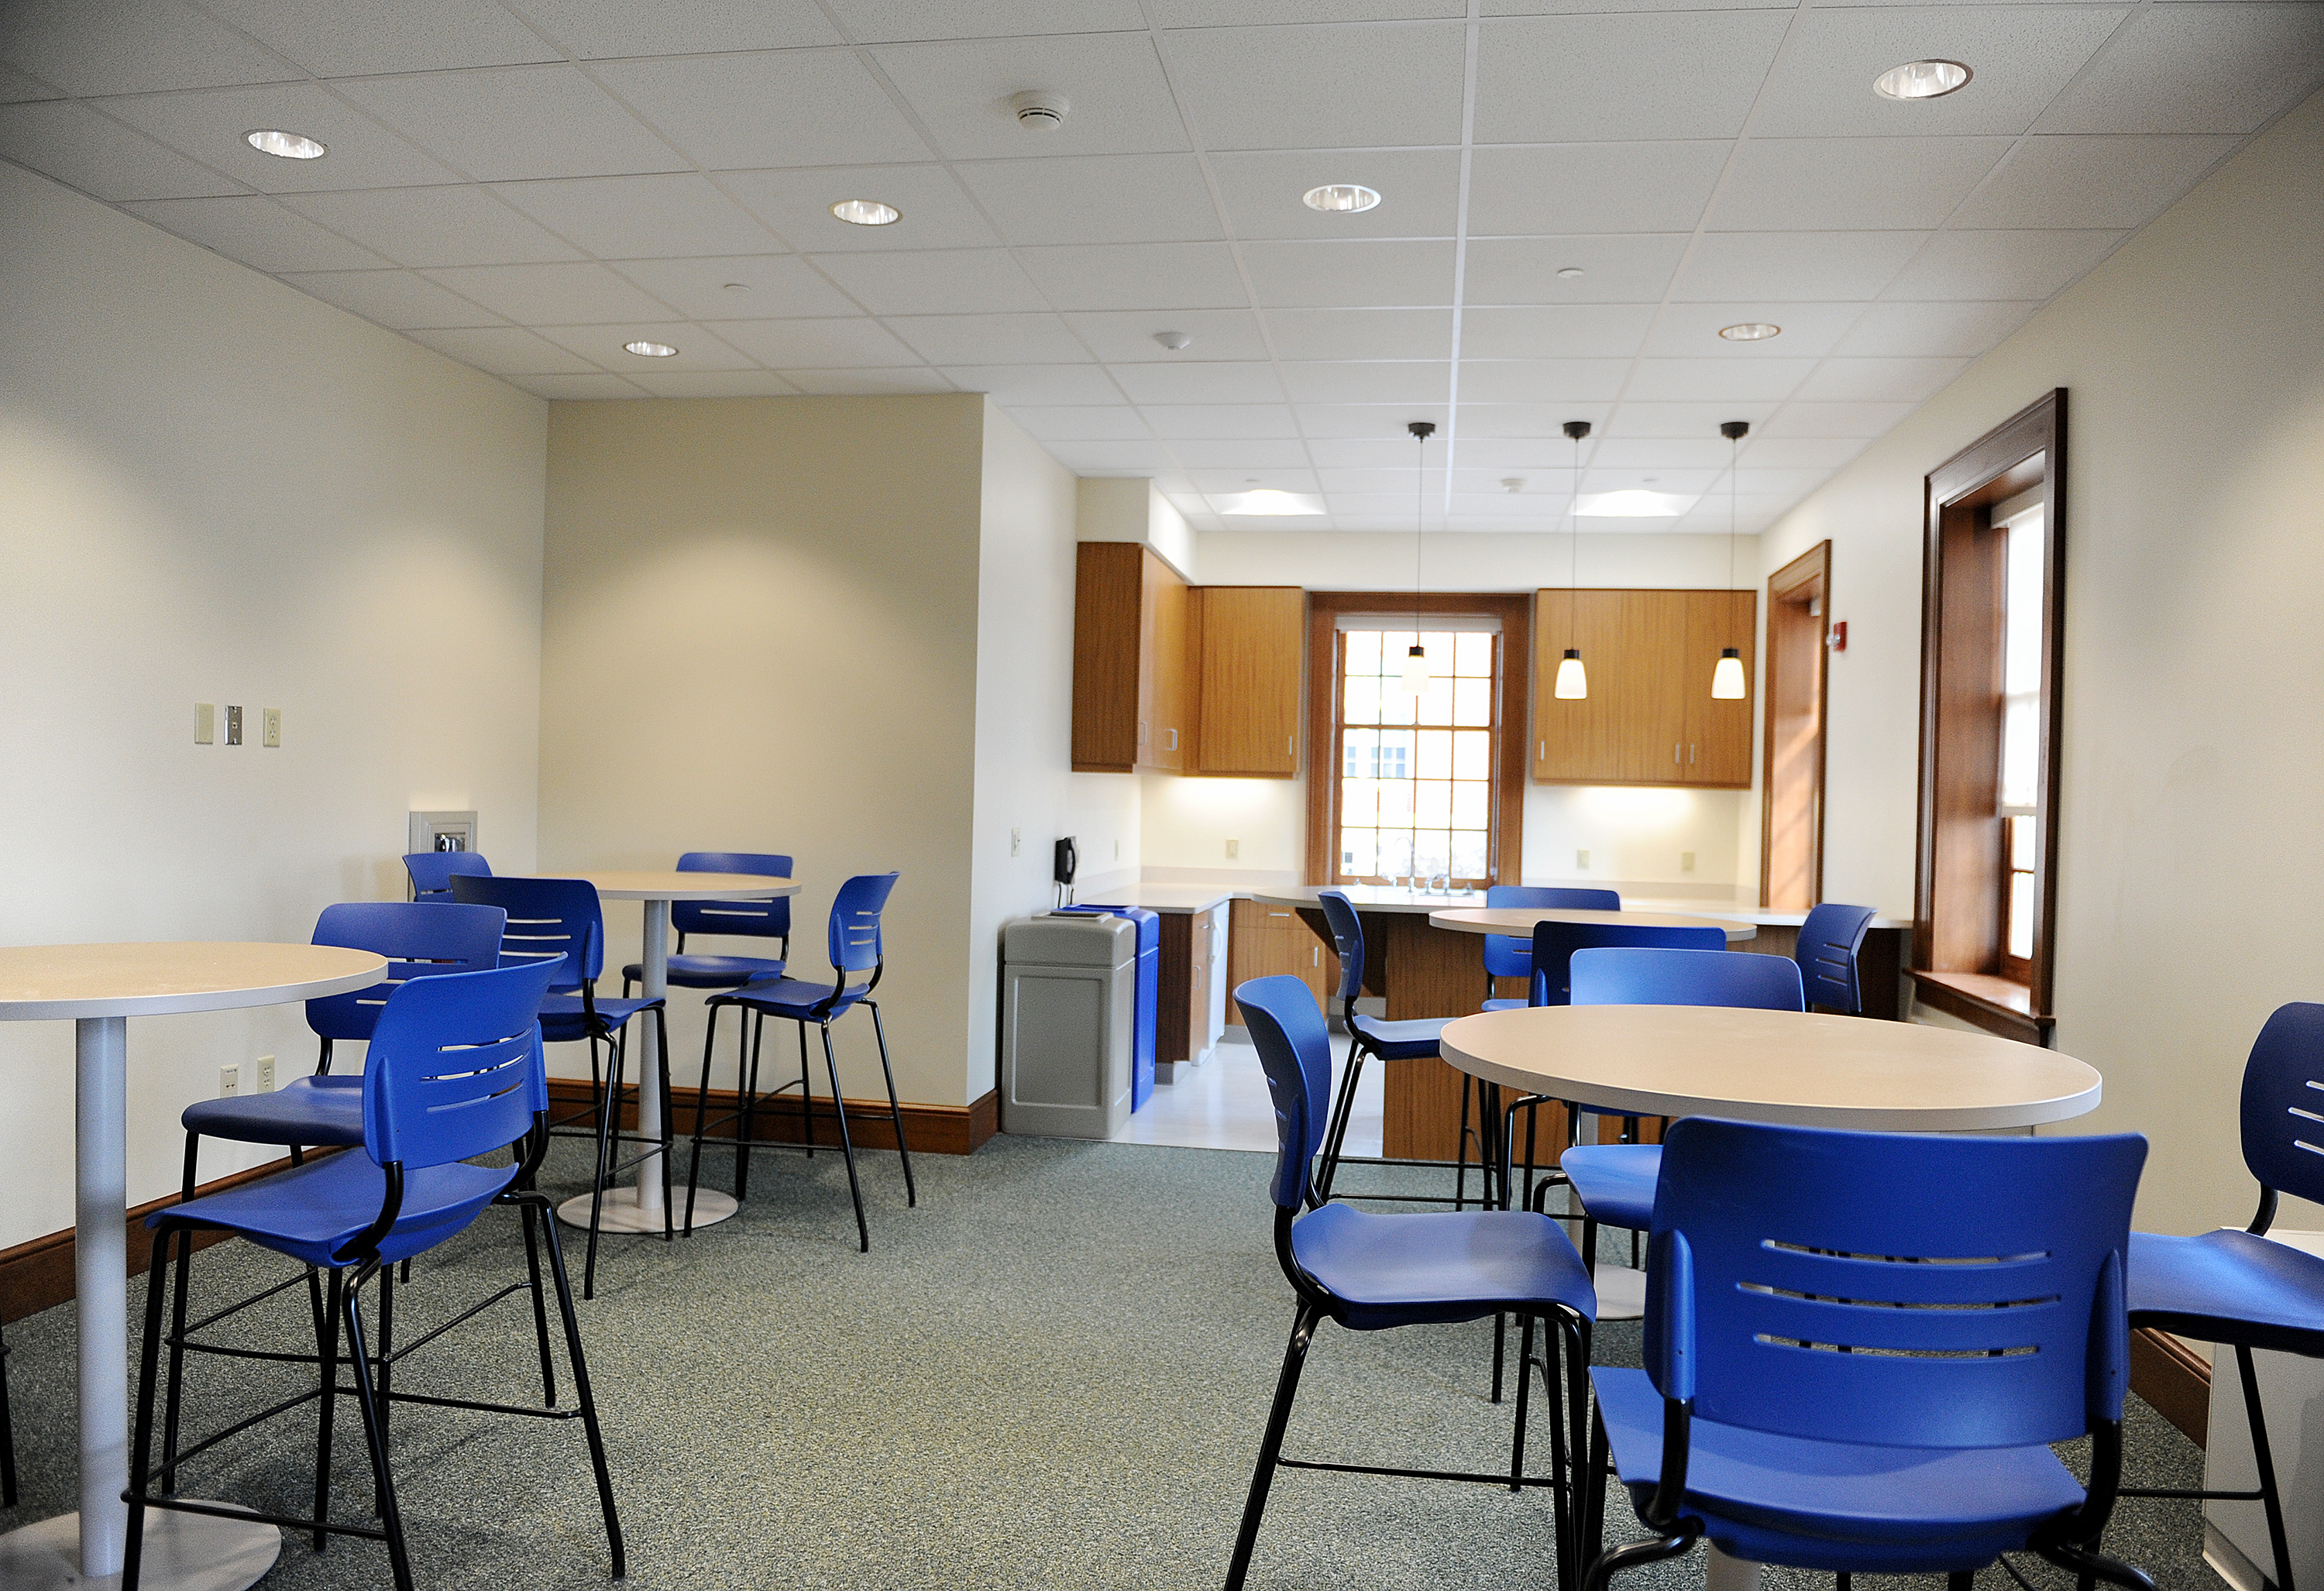 The new kitchenette/cafe at Hildreth-Mirza Hall at Bucknell University.